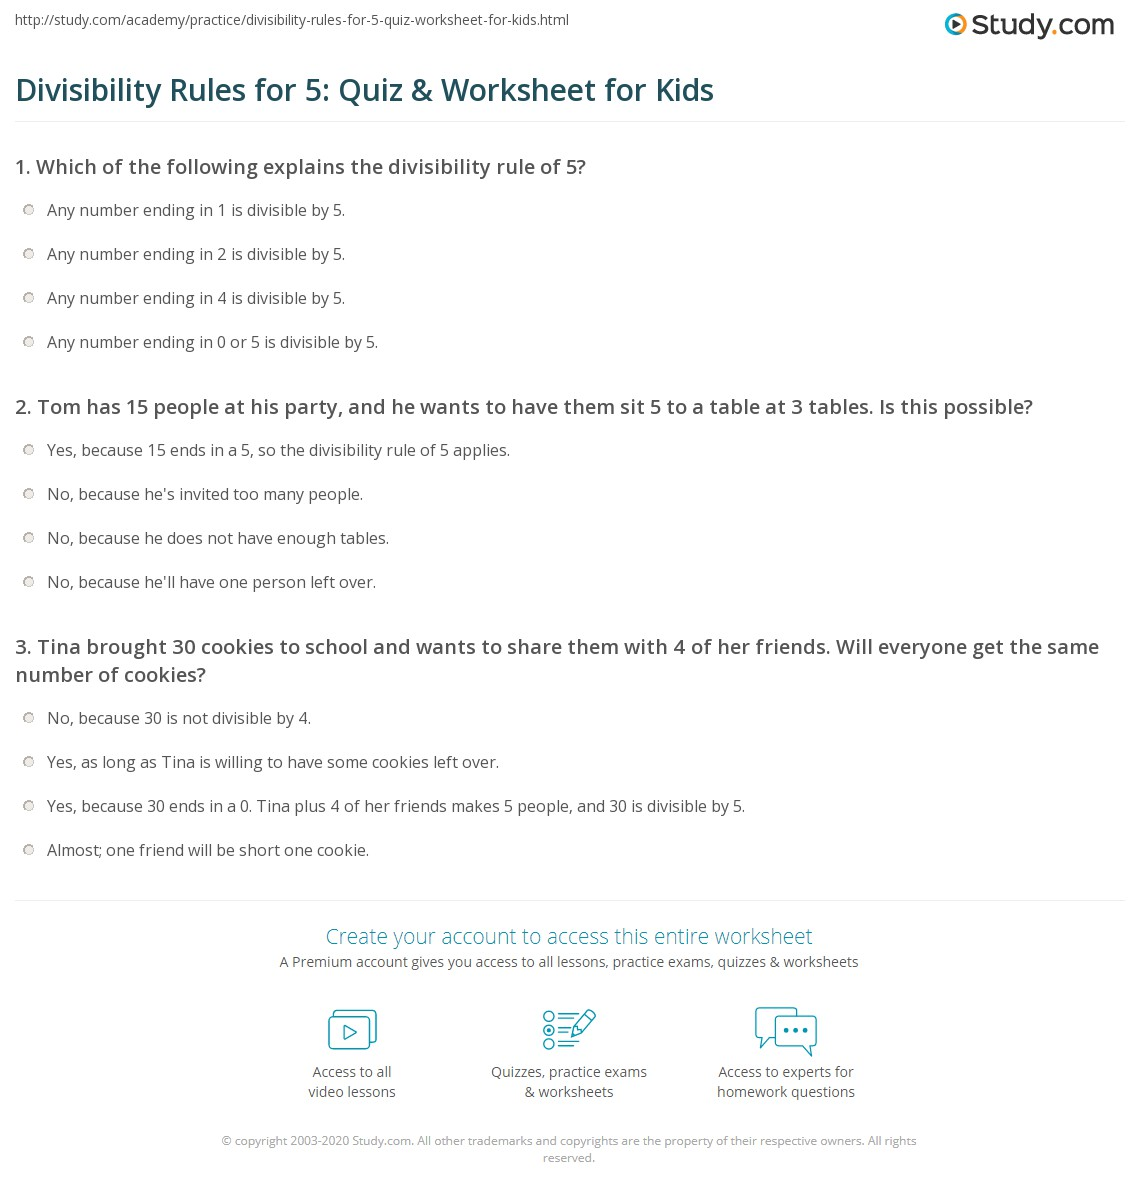 worksheet Divisibility Test Worksheet divisibility rules for 5 quiz worksheet kids study com print lesson worksheet